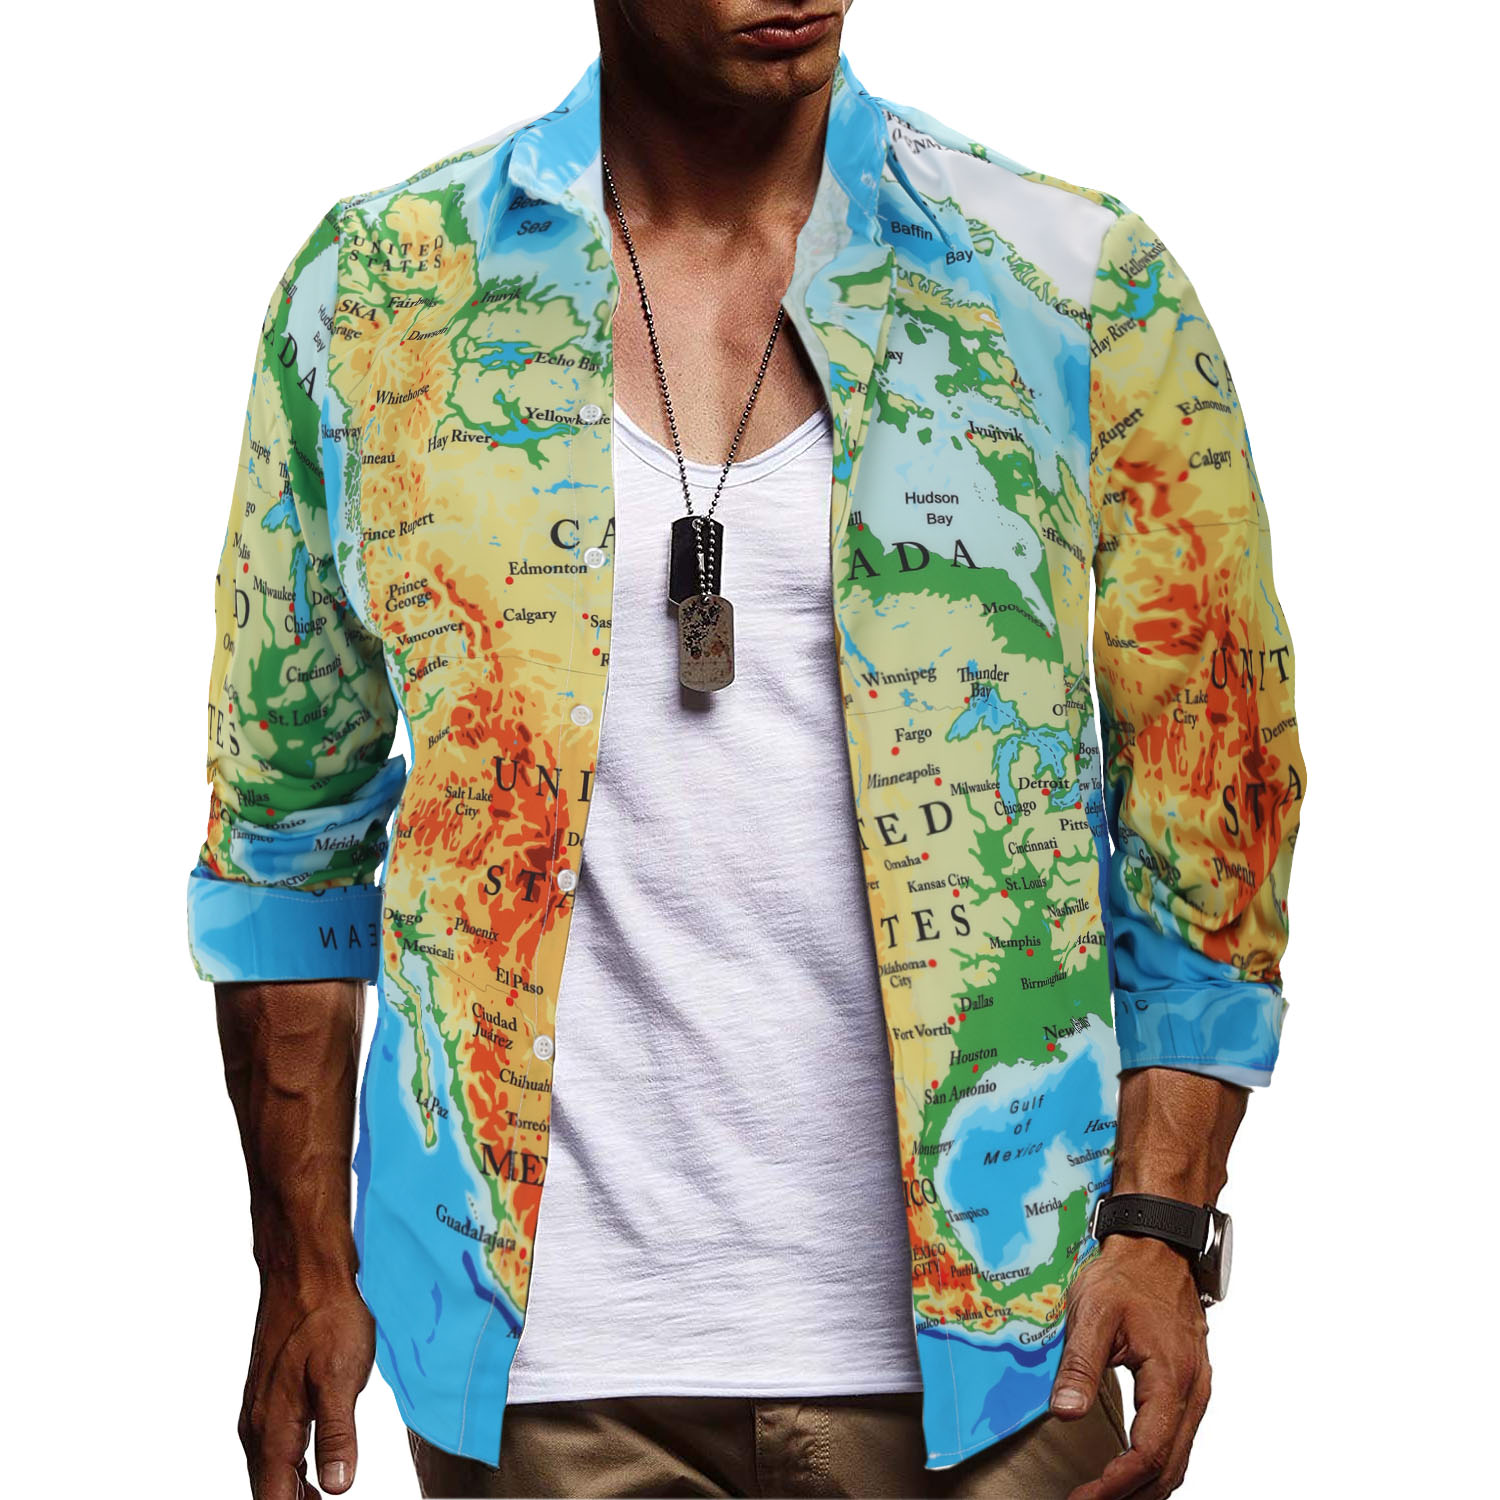 2019 new map print casual shirts for men good quality eu size slim fit long sleeve shirt men streetwear desgin clothing in Casual Shirts from Men 39 s Clothing